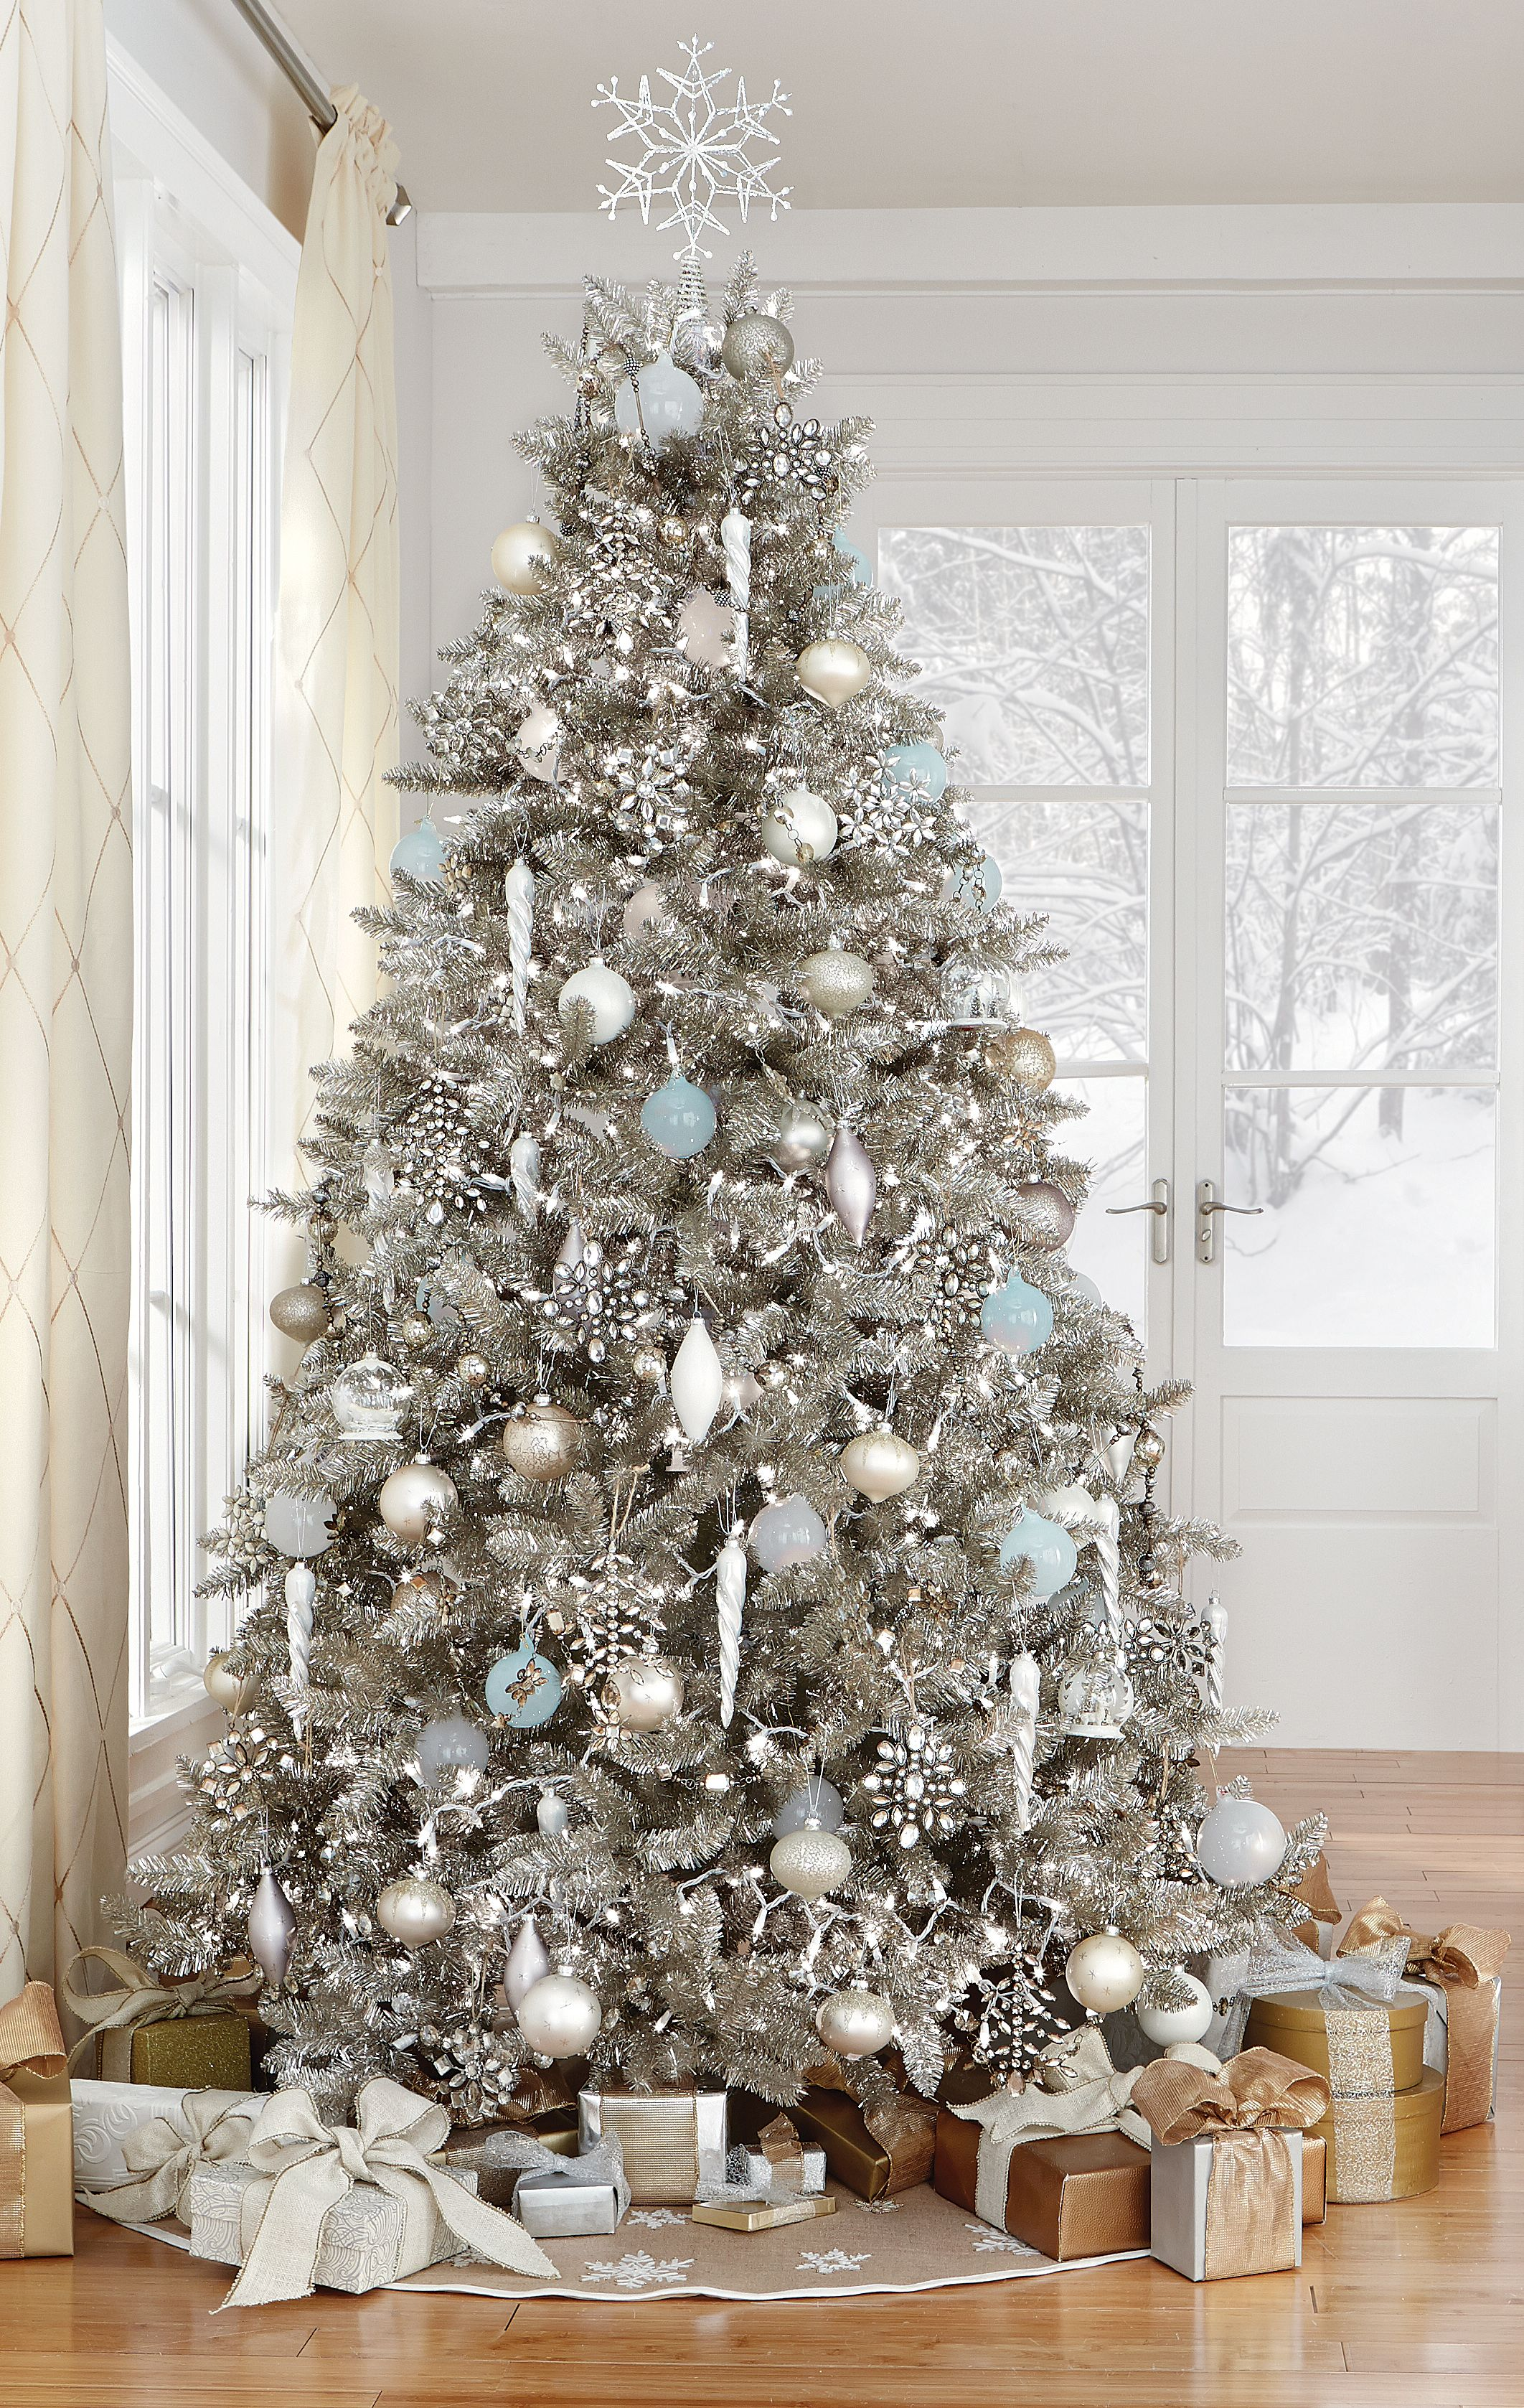 home decorators christmas trees - Rainforest Islands Ferry